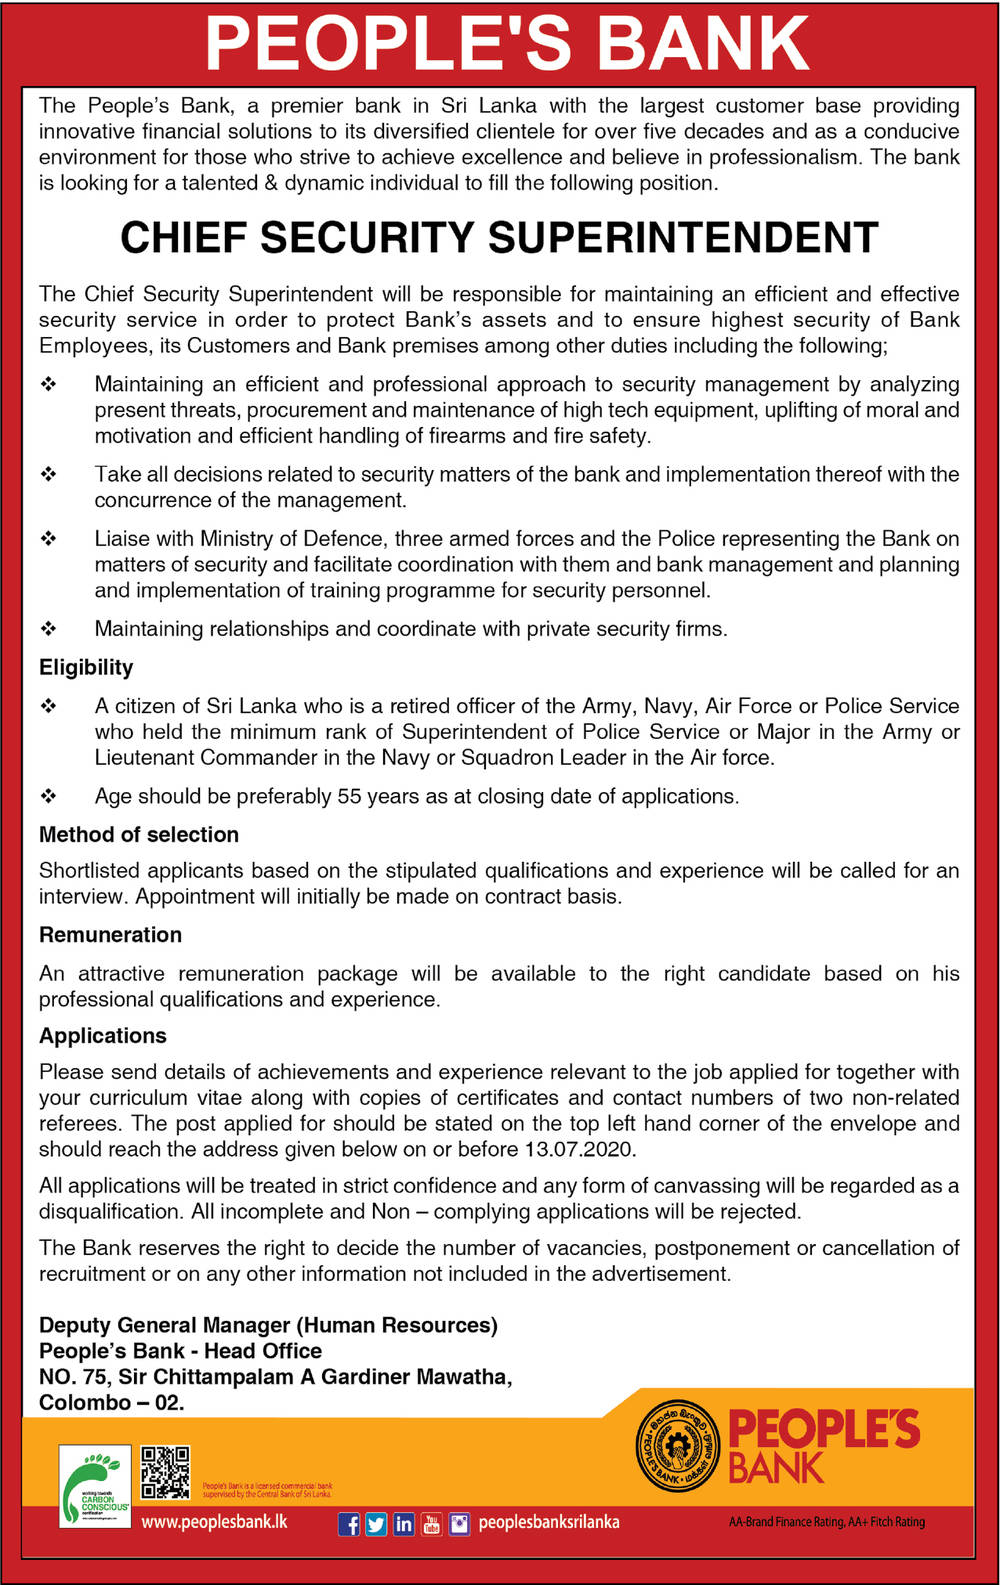 Chief Security Superintendent - People's Bank